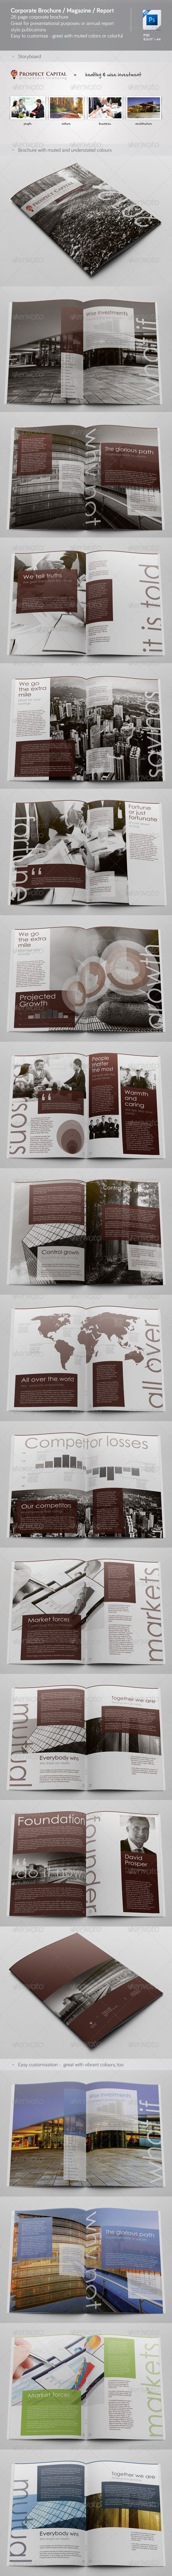 GraphicRiver Corporate Brochure Magazine Annual Report 3618259